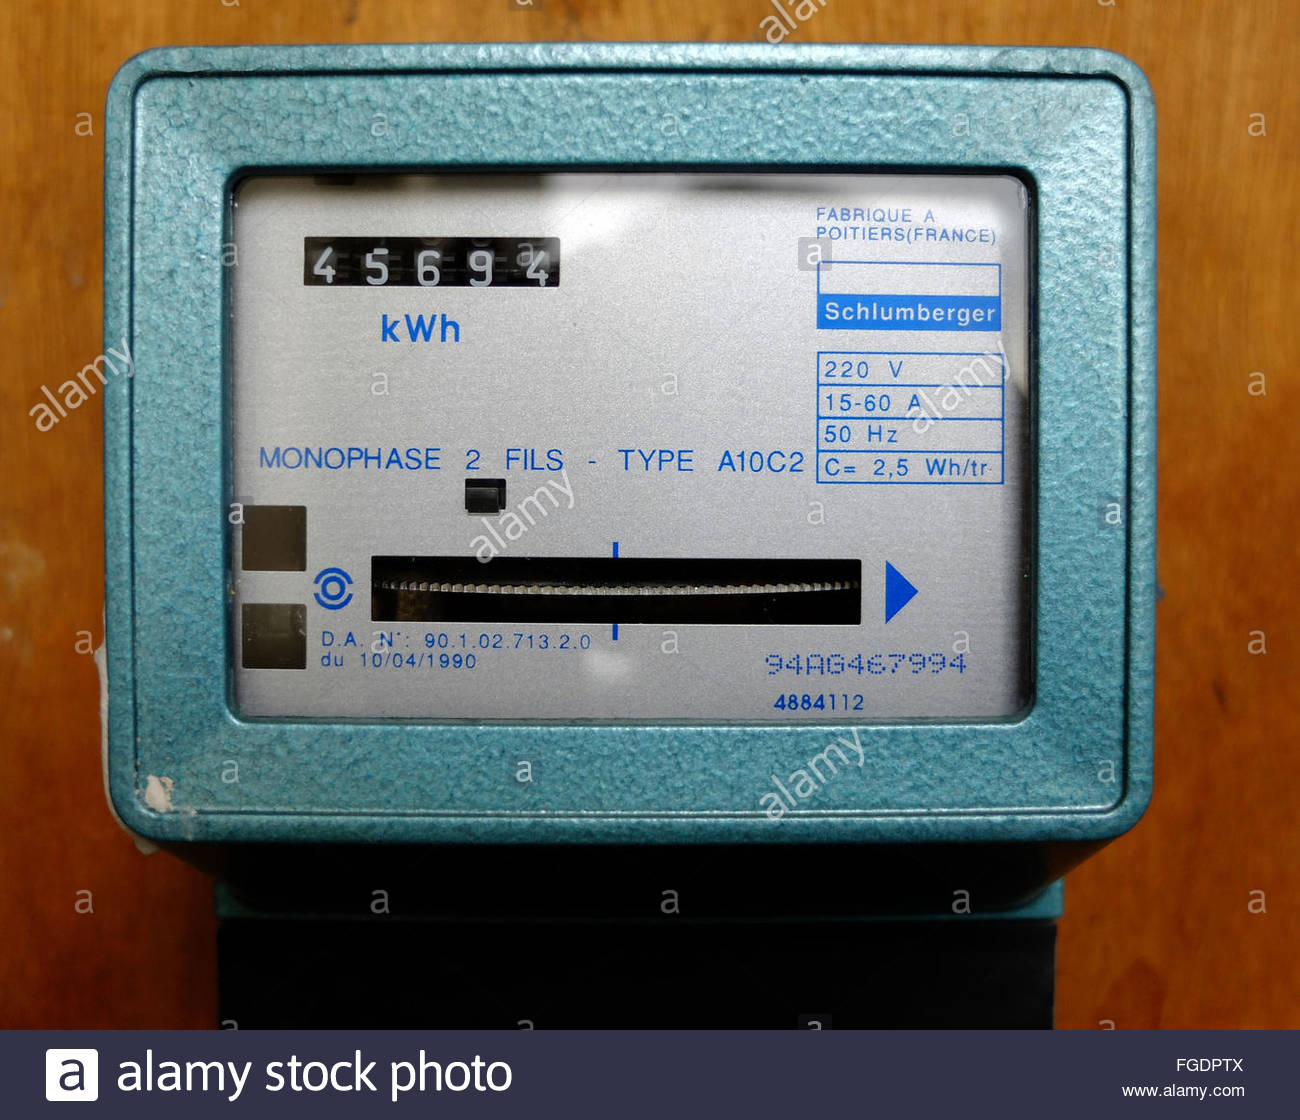 ancien compteur lectrique edf france banque d 39 images photo stock 96189658 alamy. Black Bedroom Furniture Sets. Home Design Ideas